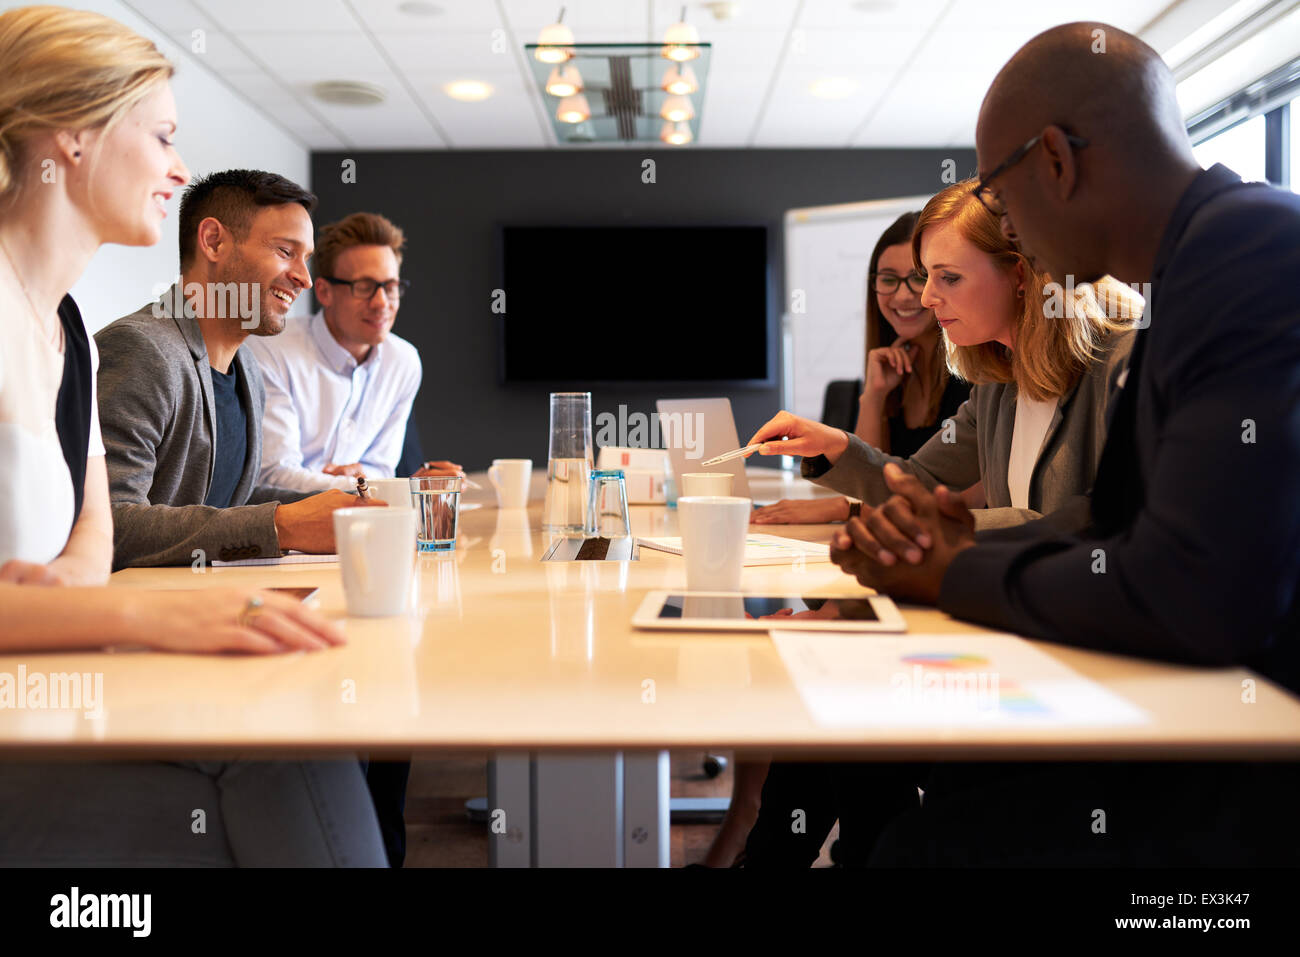 Group of young executives having a meeting in a conference room - Stock Image